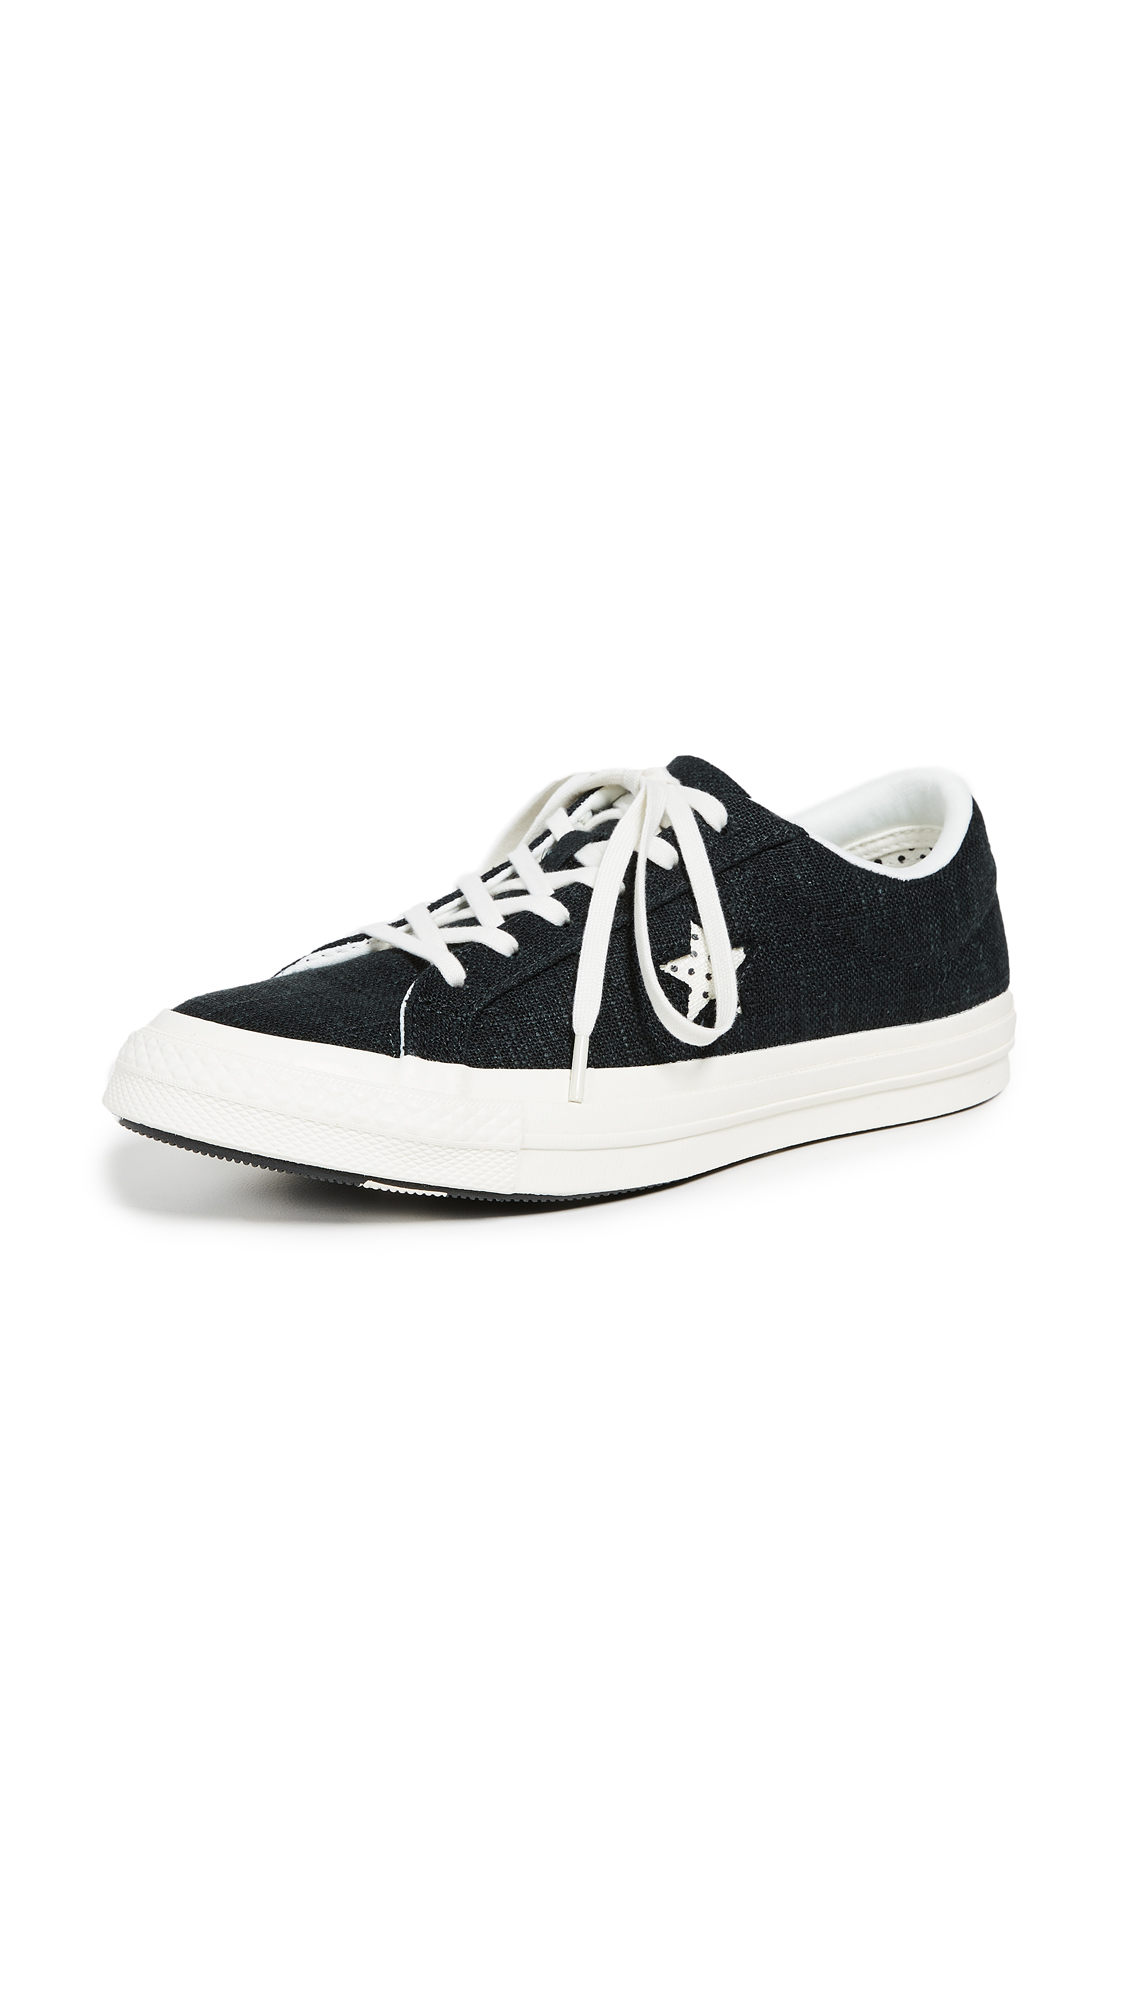 Converse One Star Ox Sneakers - Black